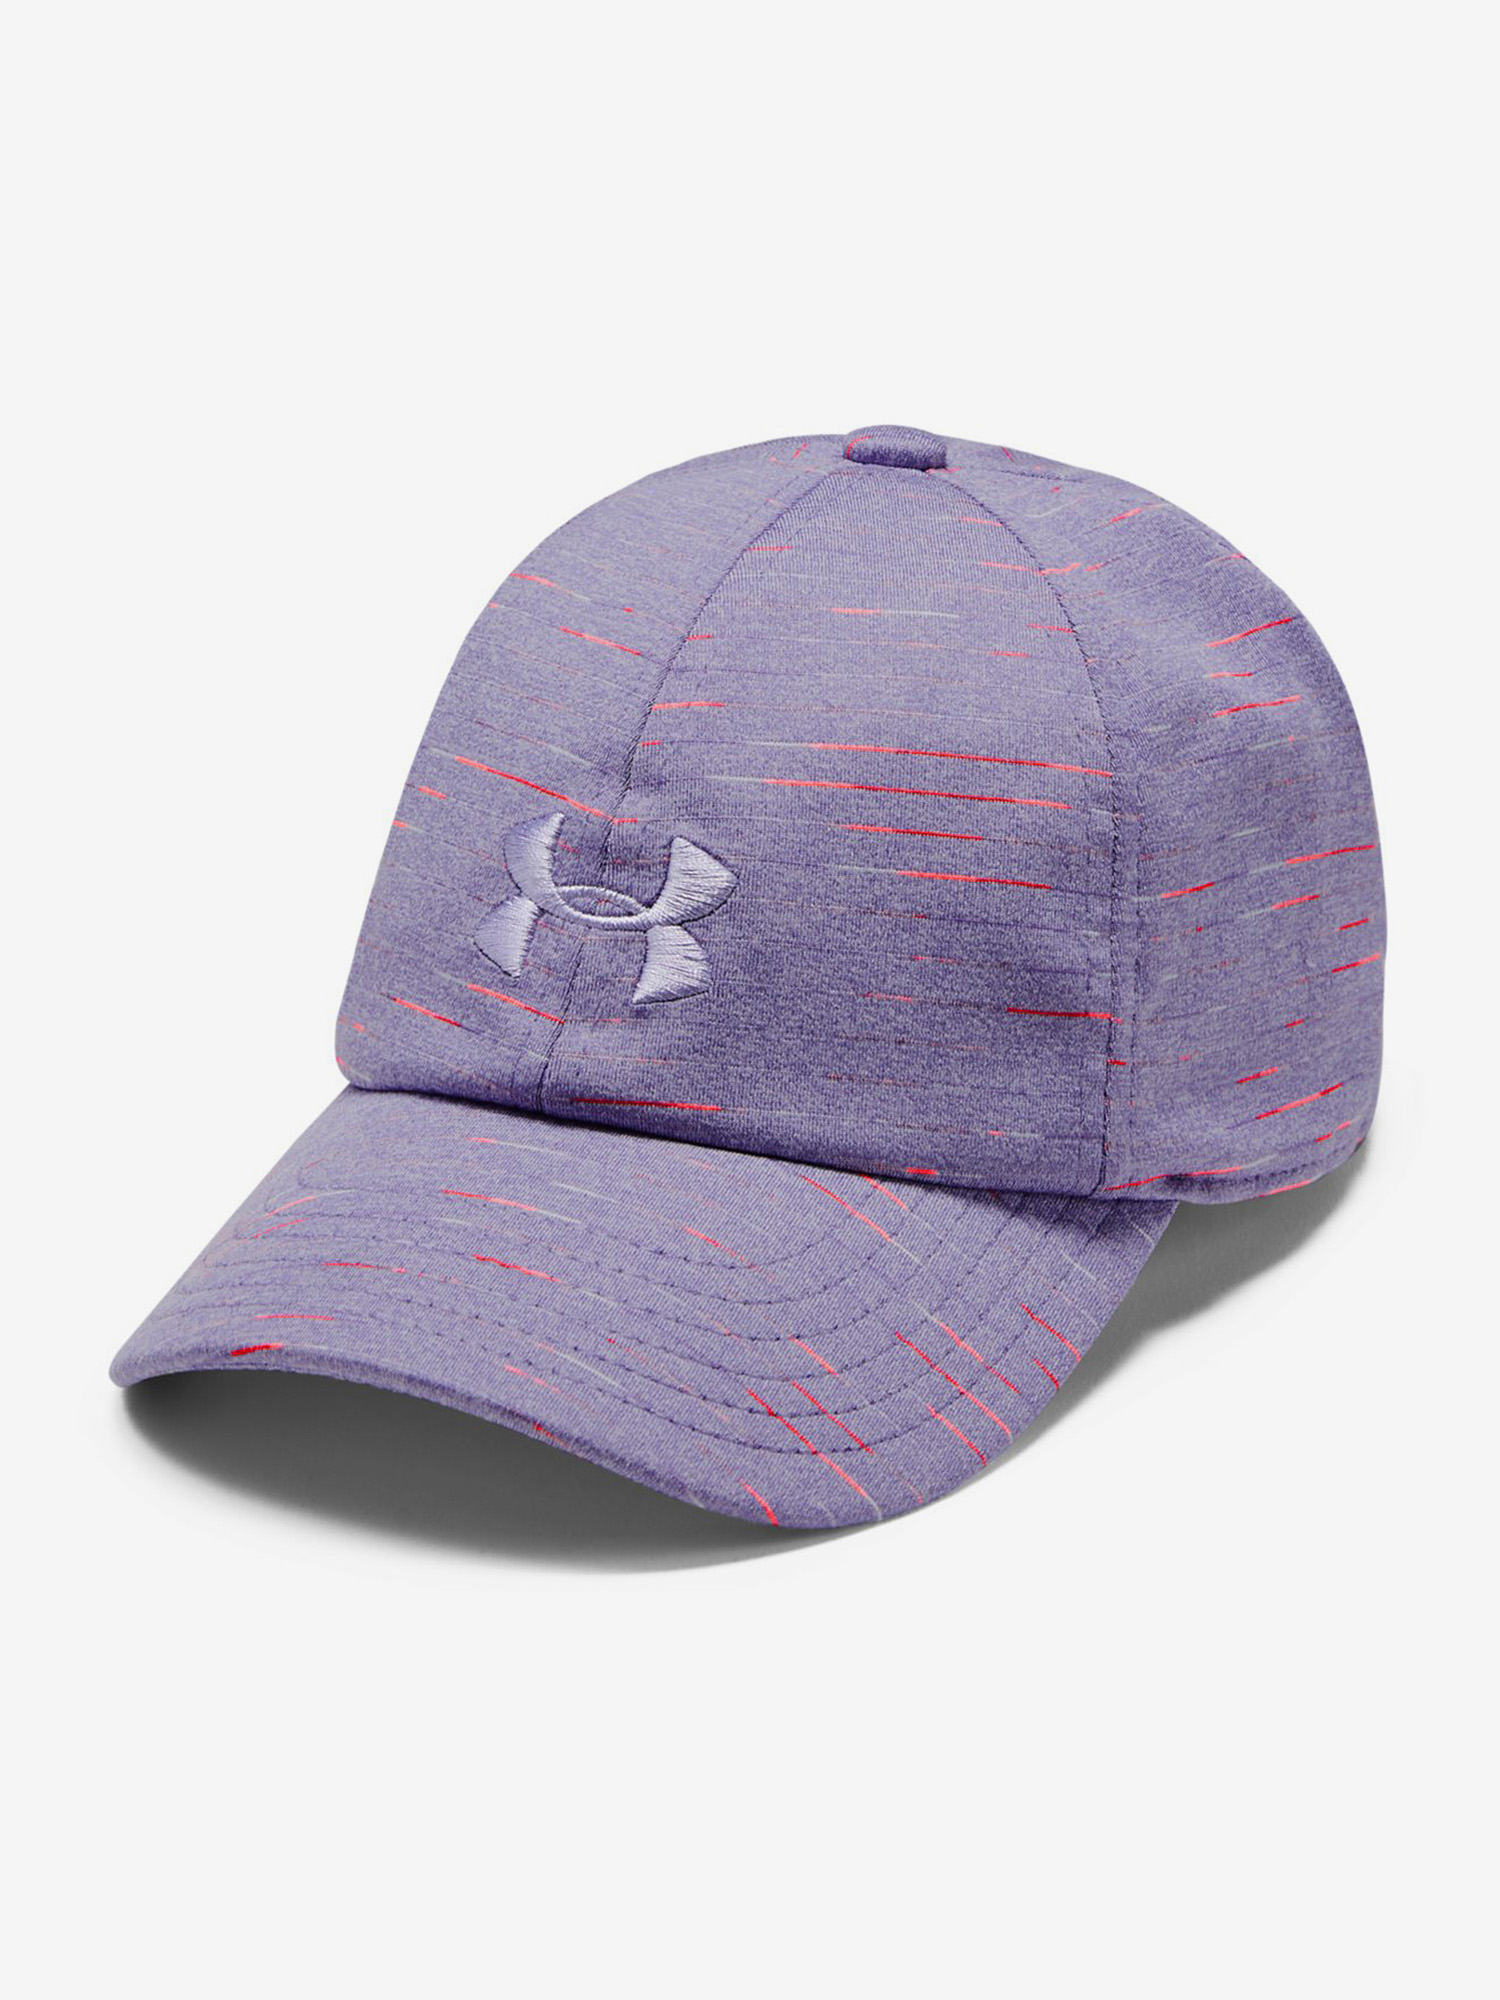 Kšiltovka Under Armour Girls Space Dye Renegade Cap-Ppl Fialová